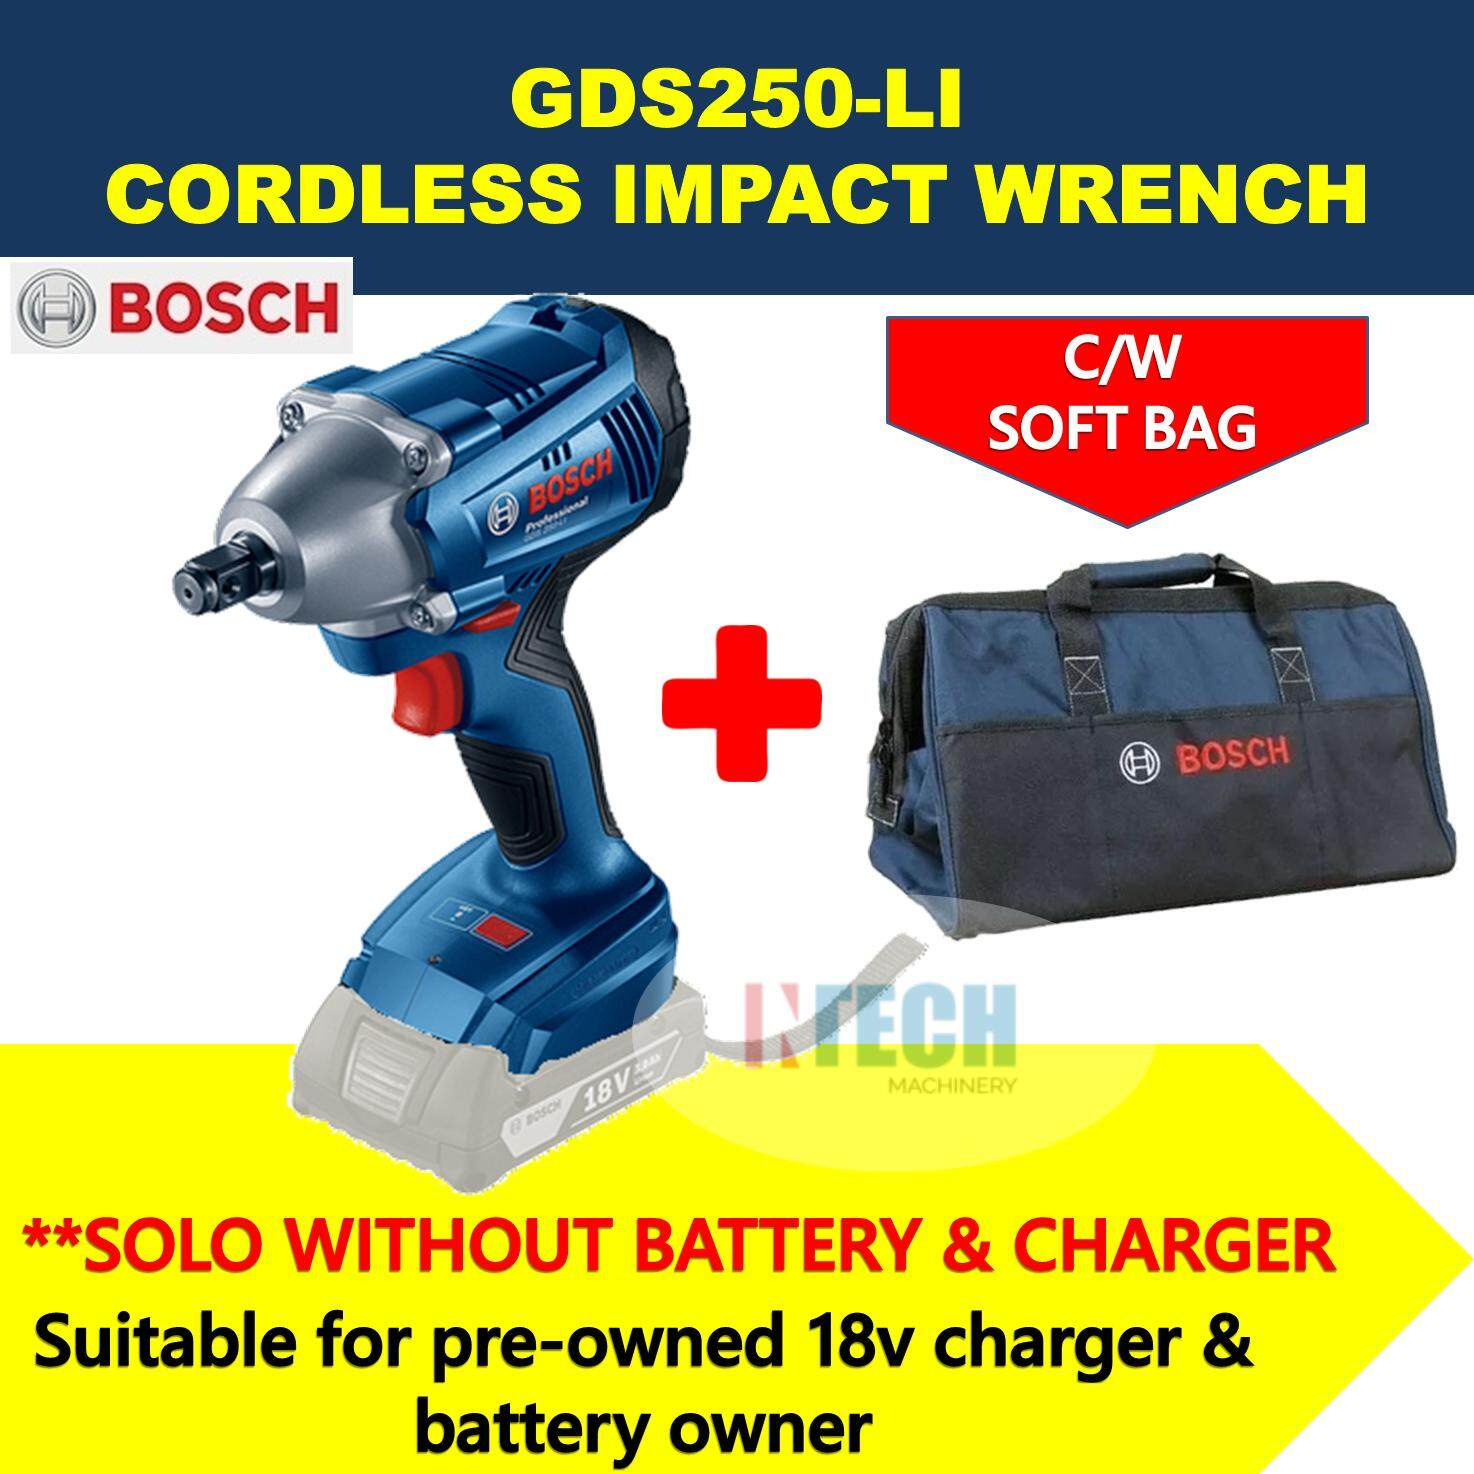 BOSCH GDS250-LI(SOLO)  CORDLESS IMPACT WRENCH C/W SOFT BAG- without battery and charger (GDS250LI)